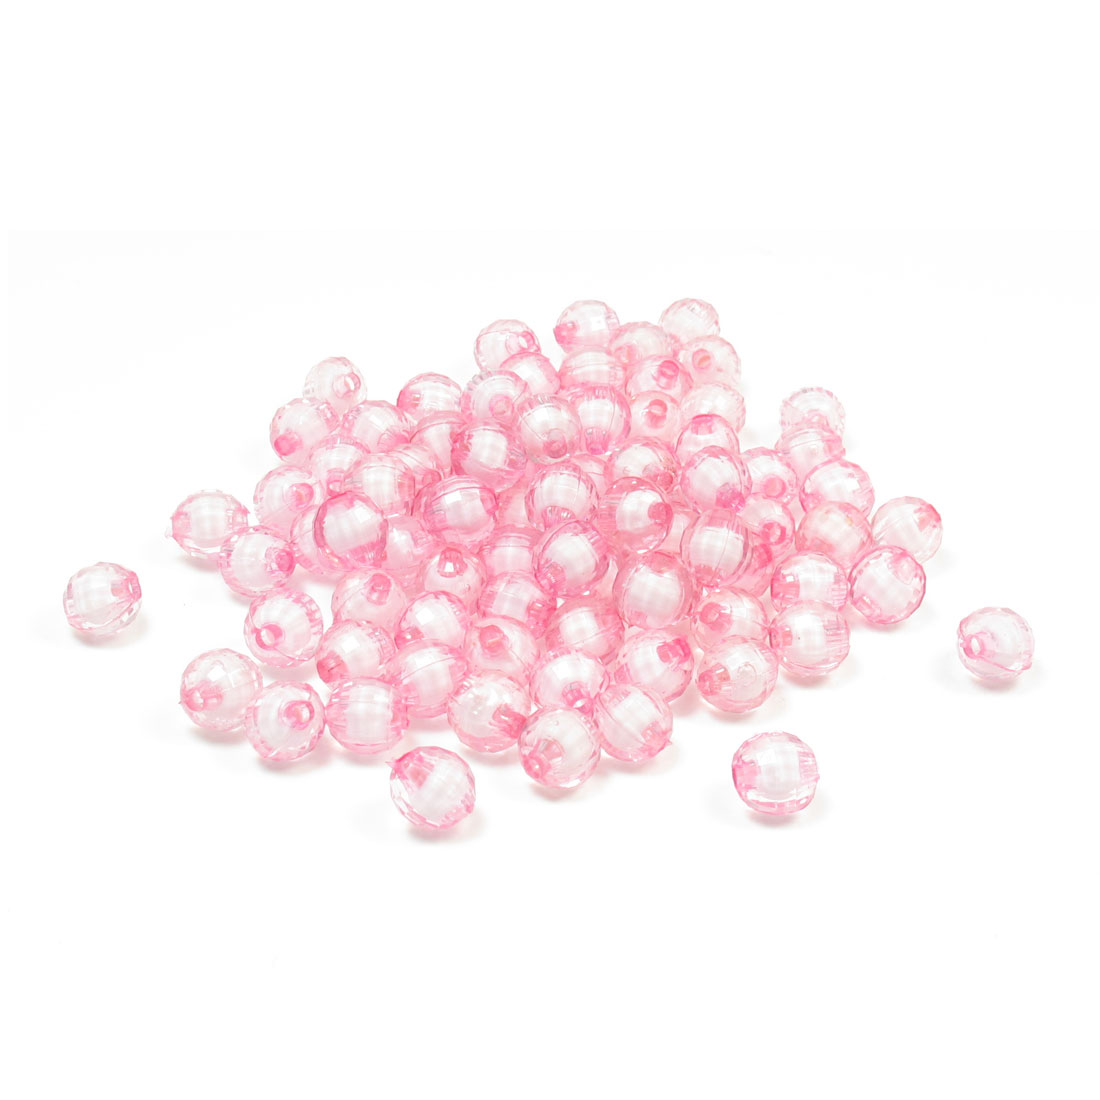 95 Pcs 8mm Jewelry Findings Craft Plastic Crystal Beads Pink